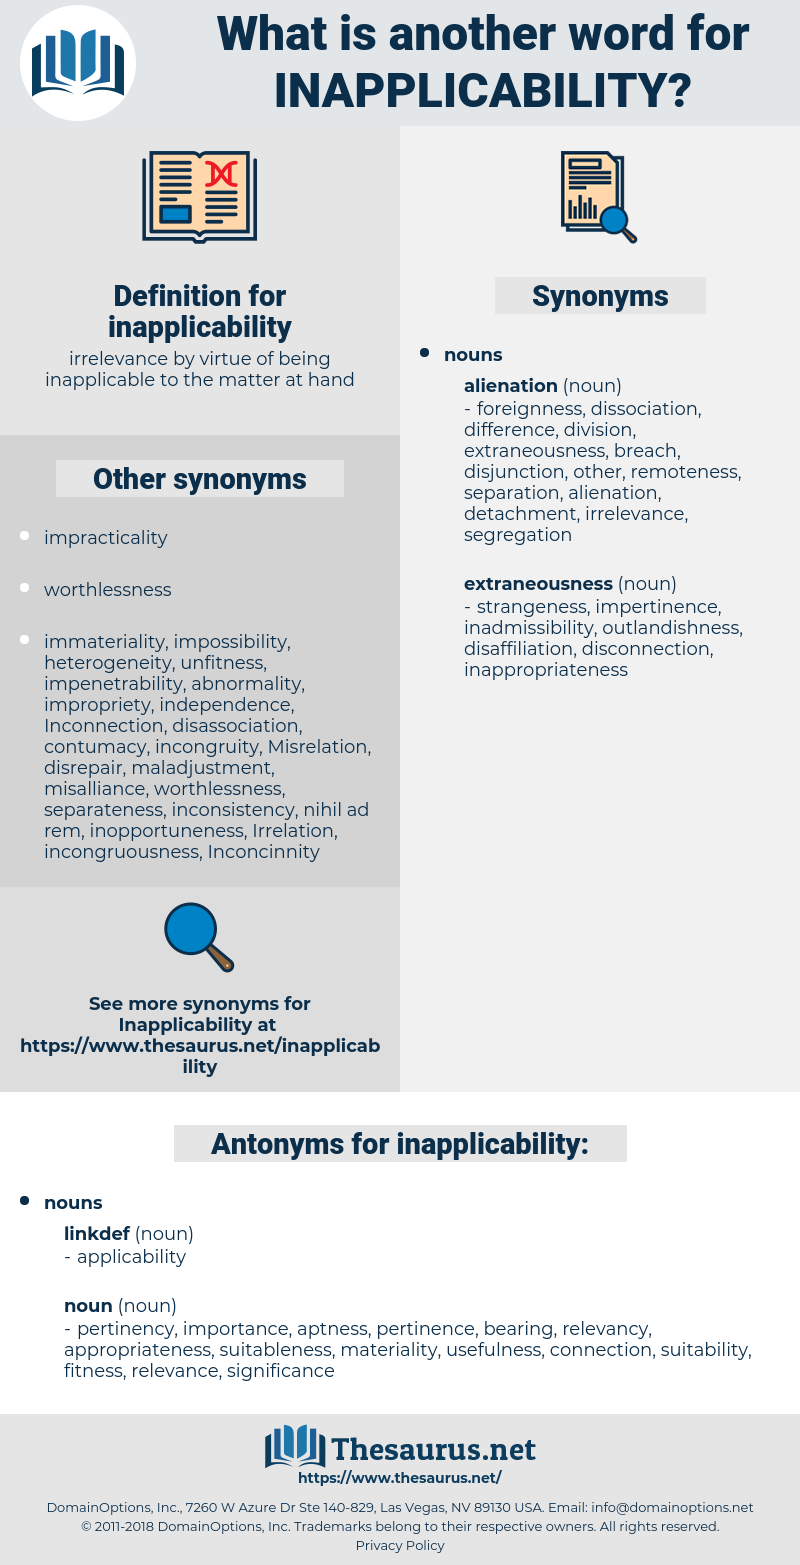 inapplicability, synonym inapplicability, another word for inapplicability, words like inapplicability, thesaurus inapplicability